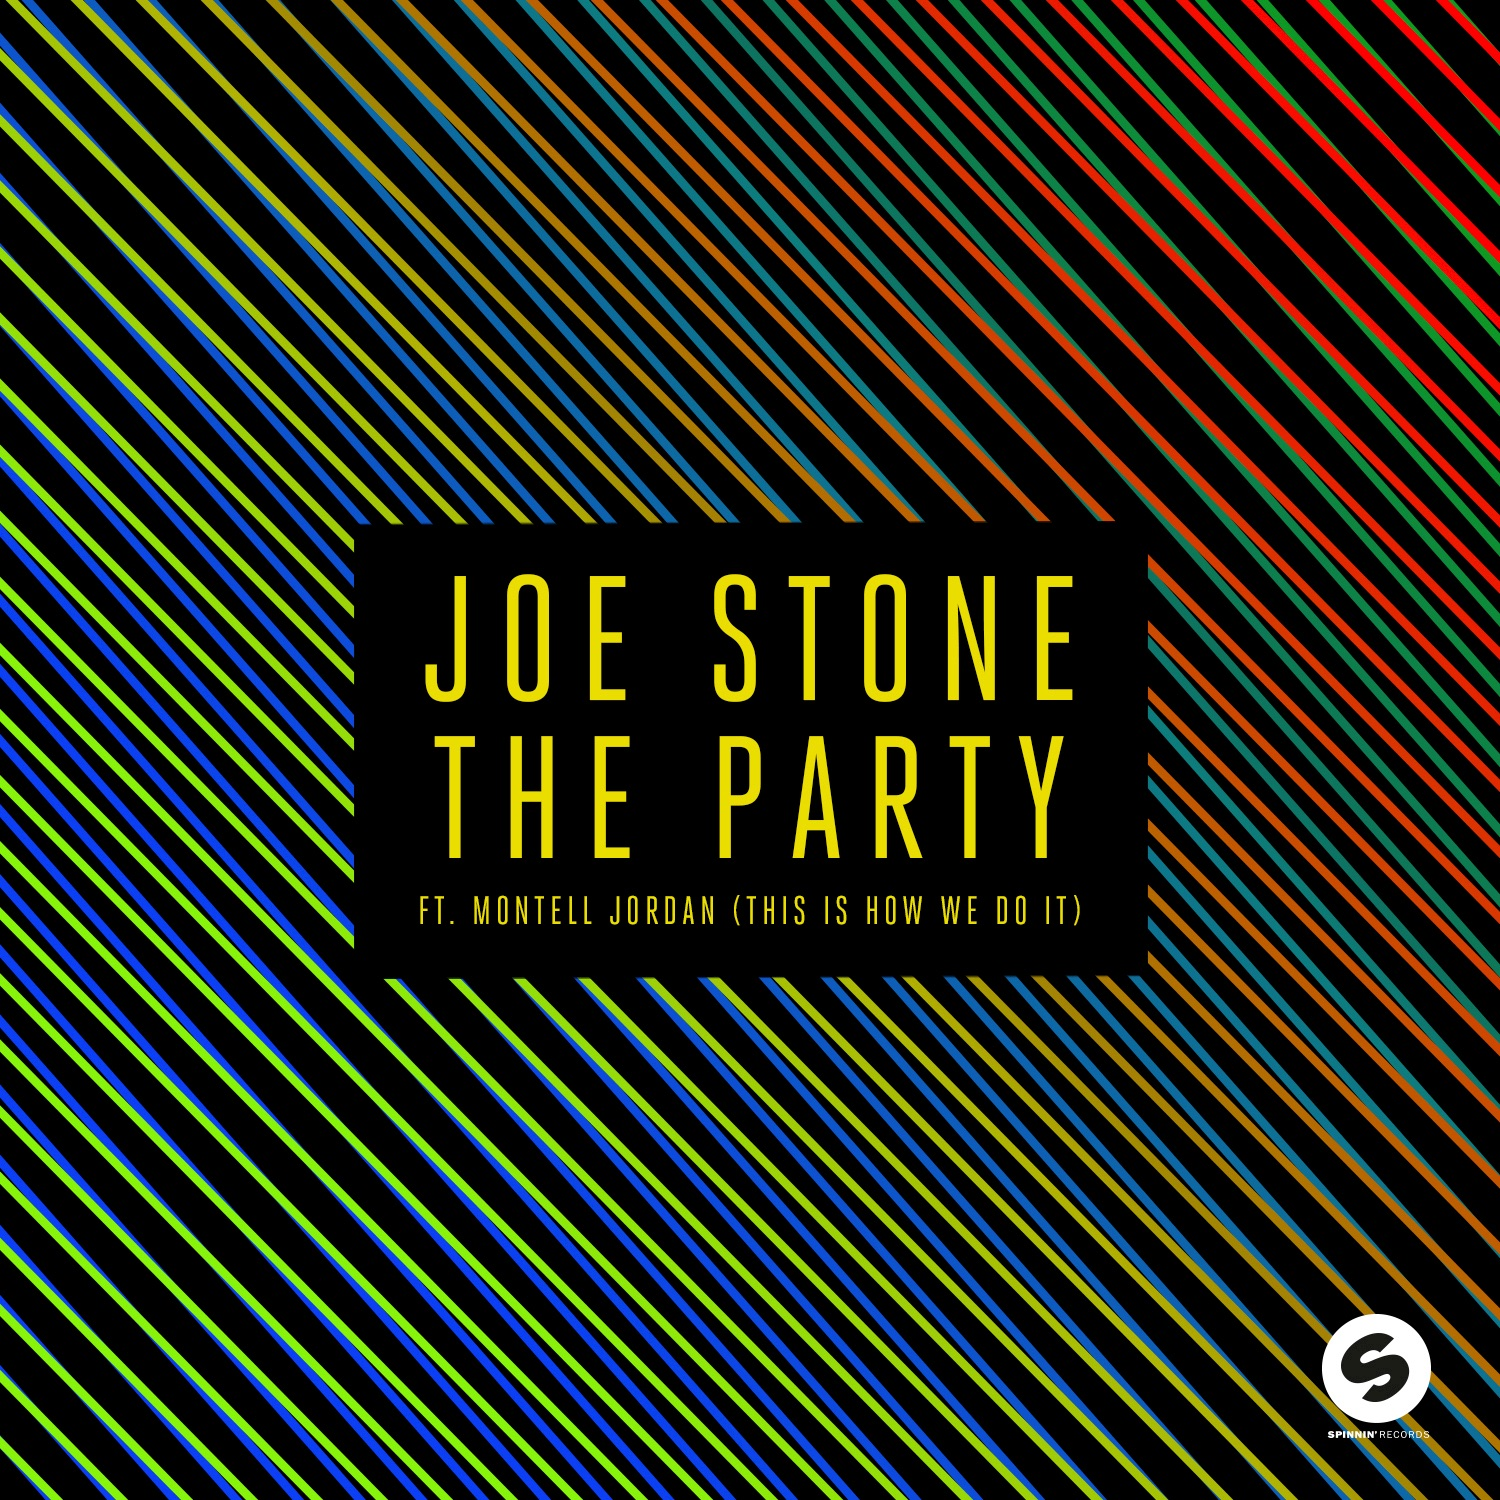 The Party (This Is How We Do It) [feat. Montell Jordan] - Single